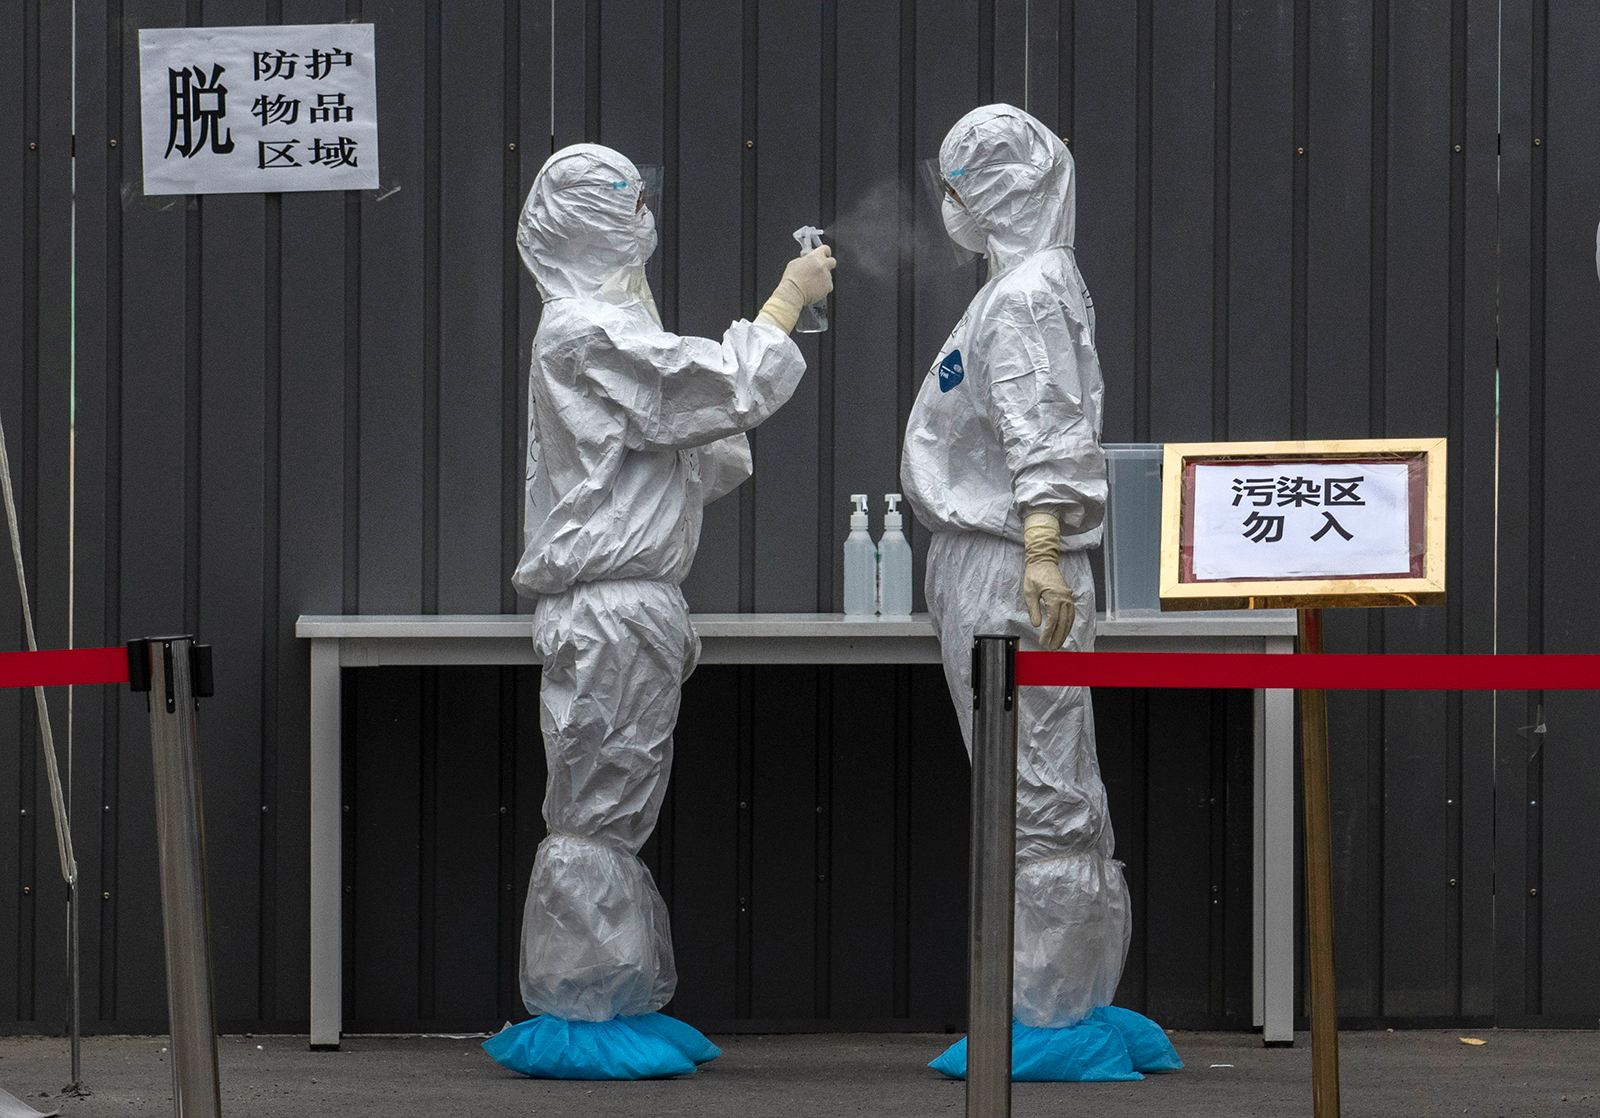 Chinese epidemic control workers wear protective suits as they disinfect each other after performing nucleic acid swab tests for Covid-19 on citizens at a government testing site in Xicheng District on June 24 in Beijing.